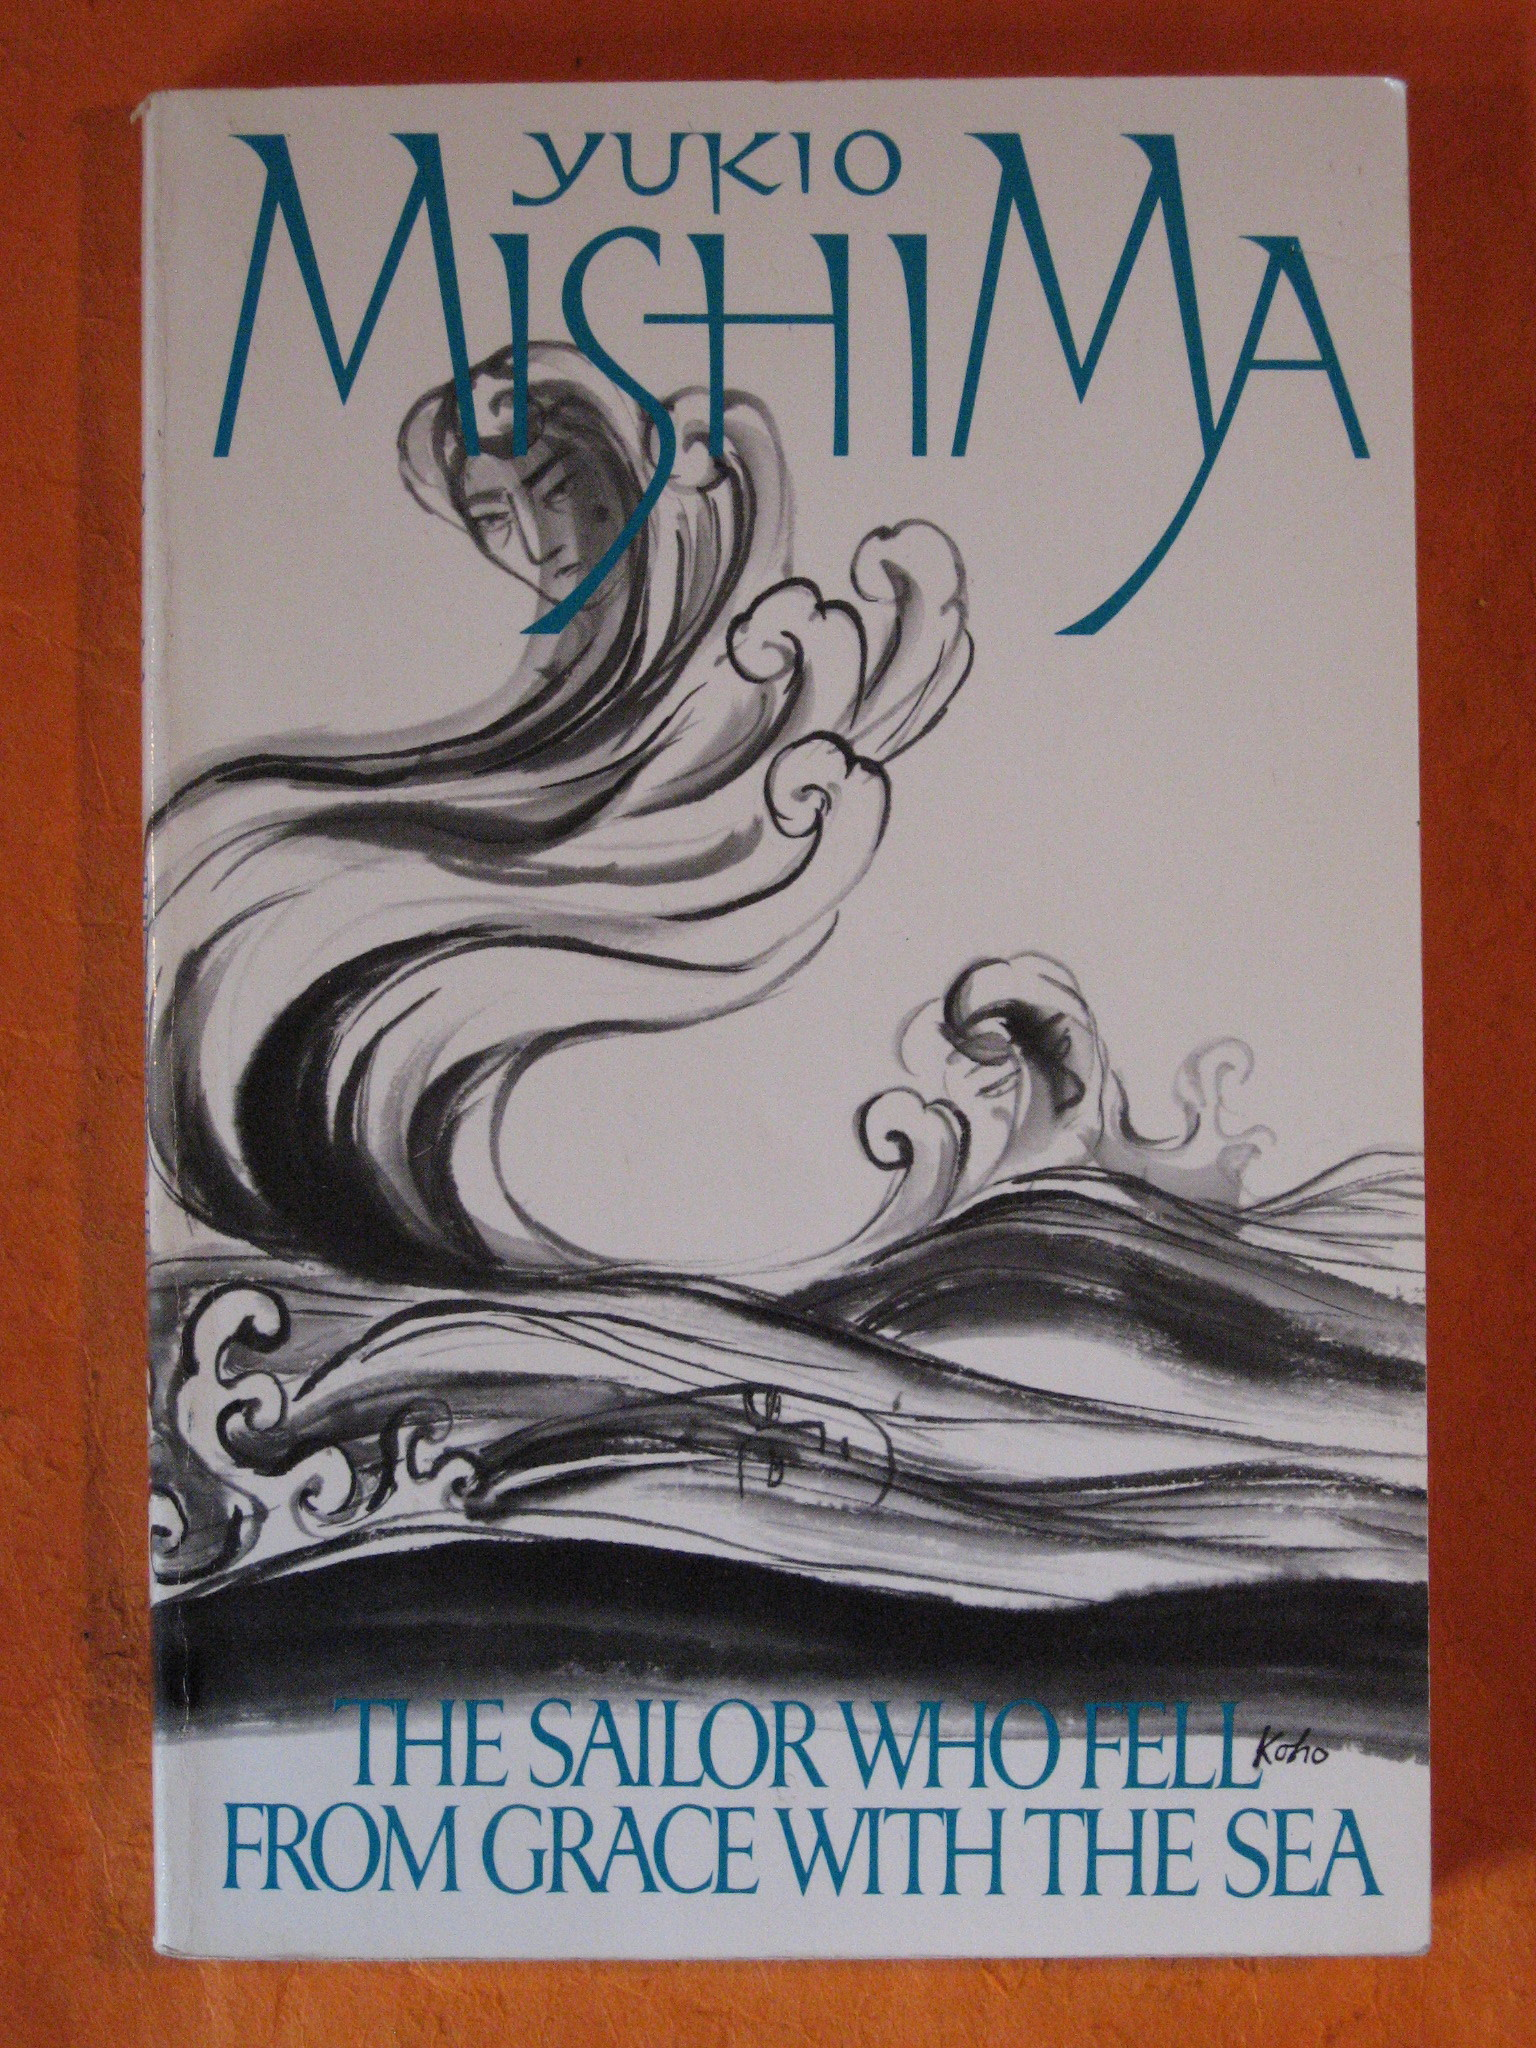 The Sailor Who Fell from Grace with the Sea, Mishima, Yukio; Nathan, John (translator)